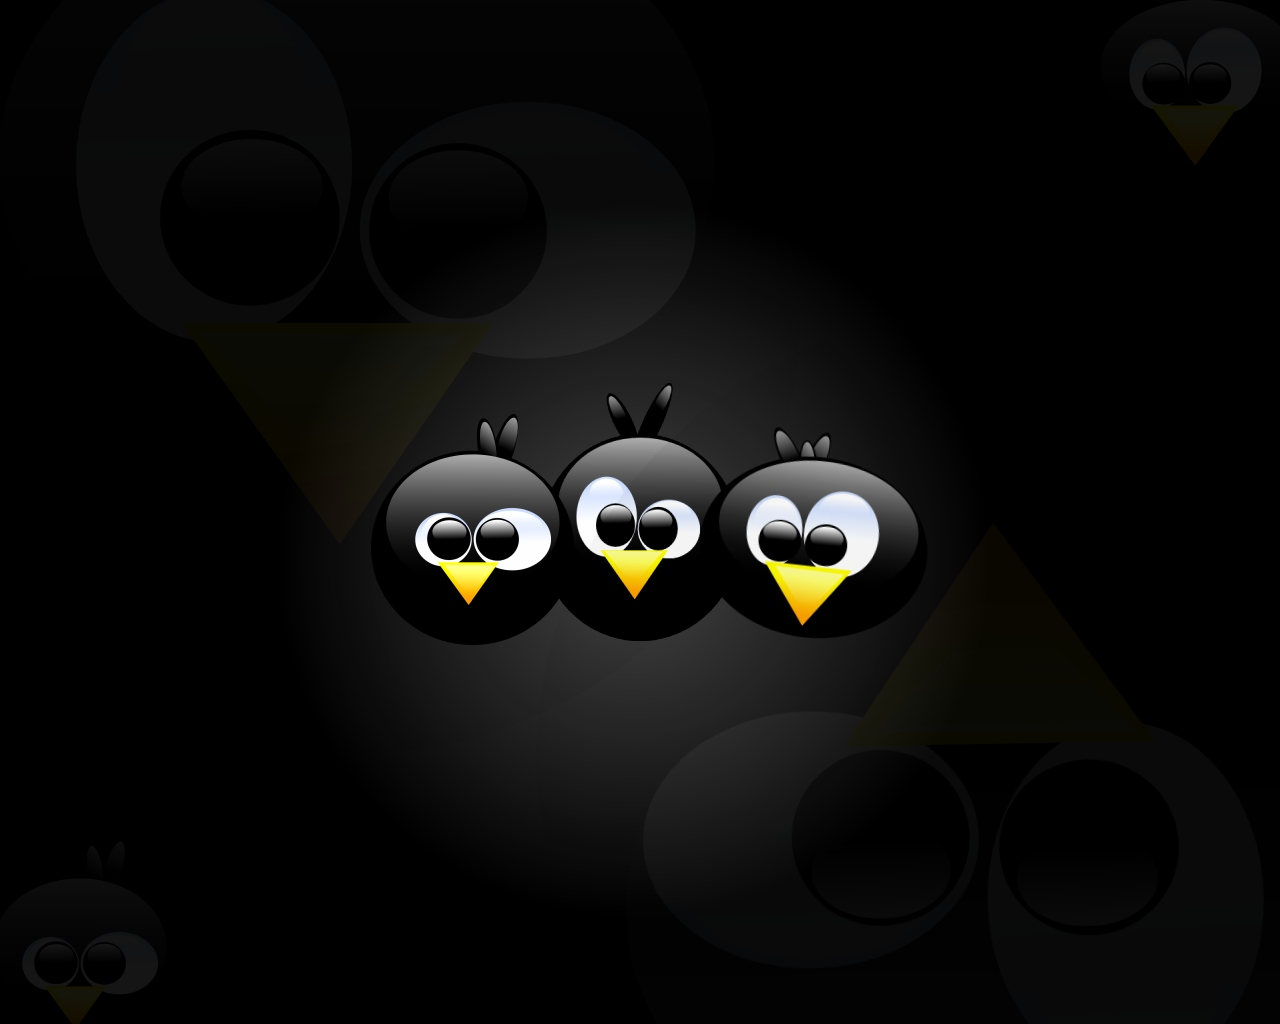 Free Wallpaper Includes Three Angry Birds Fun And